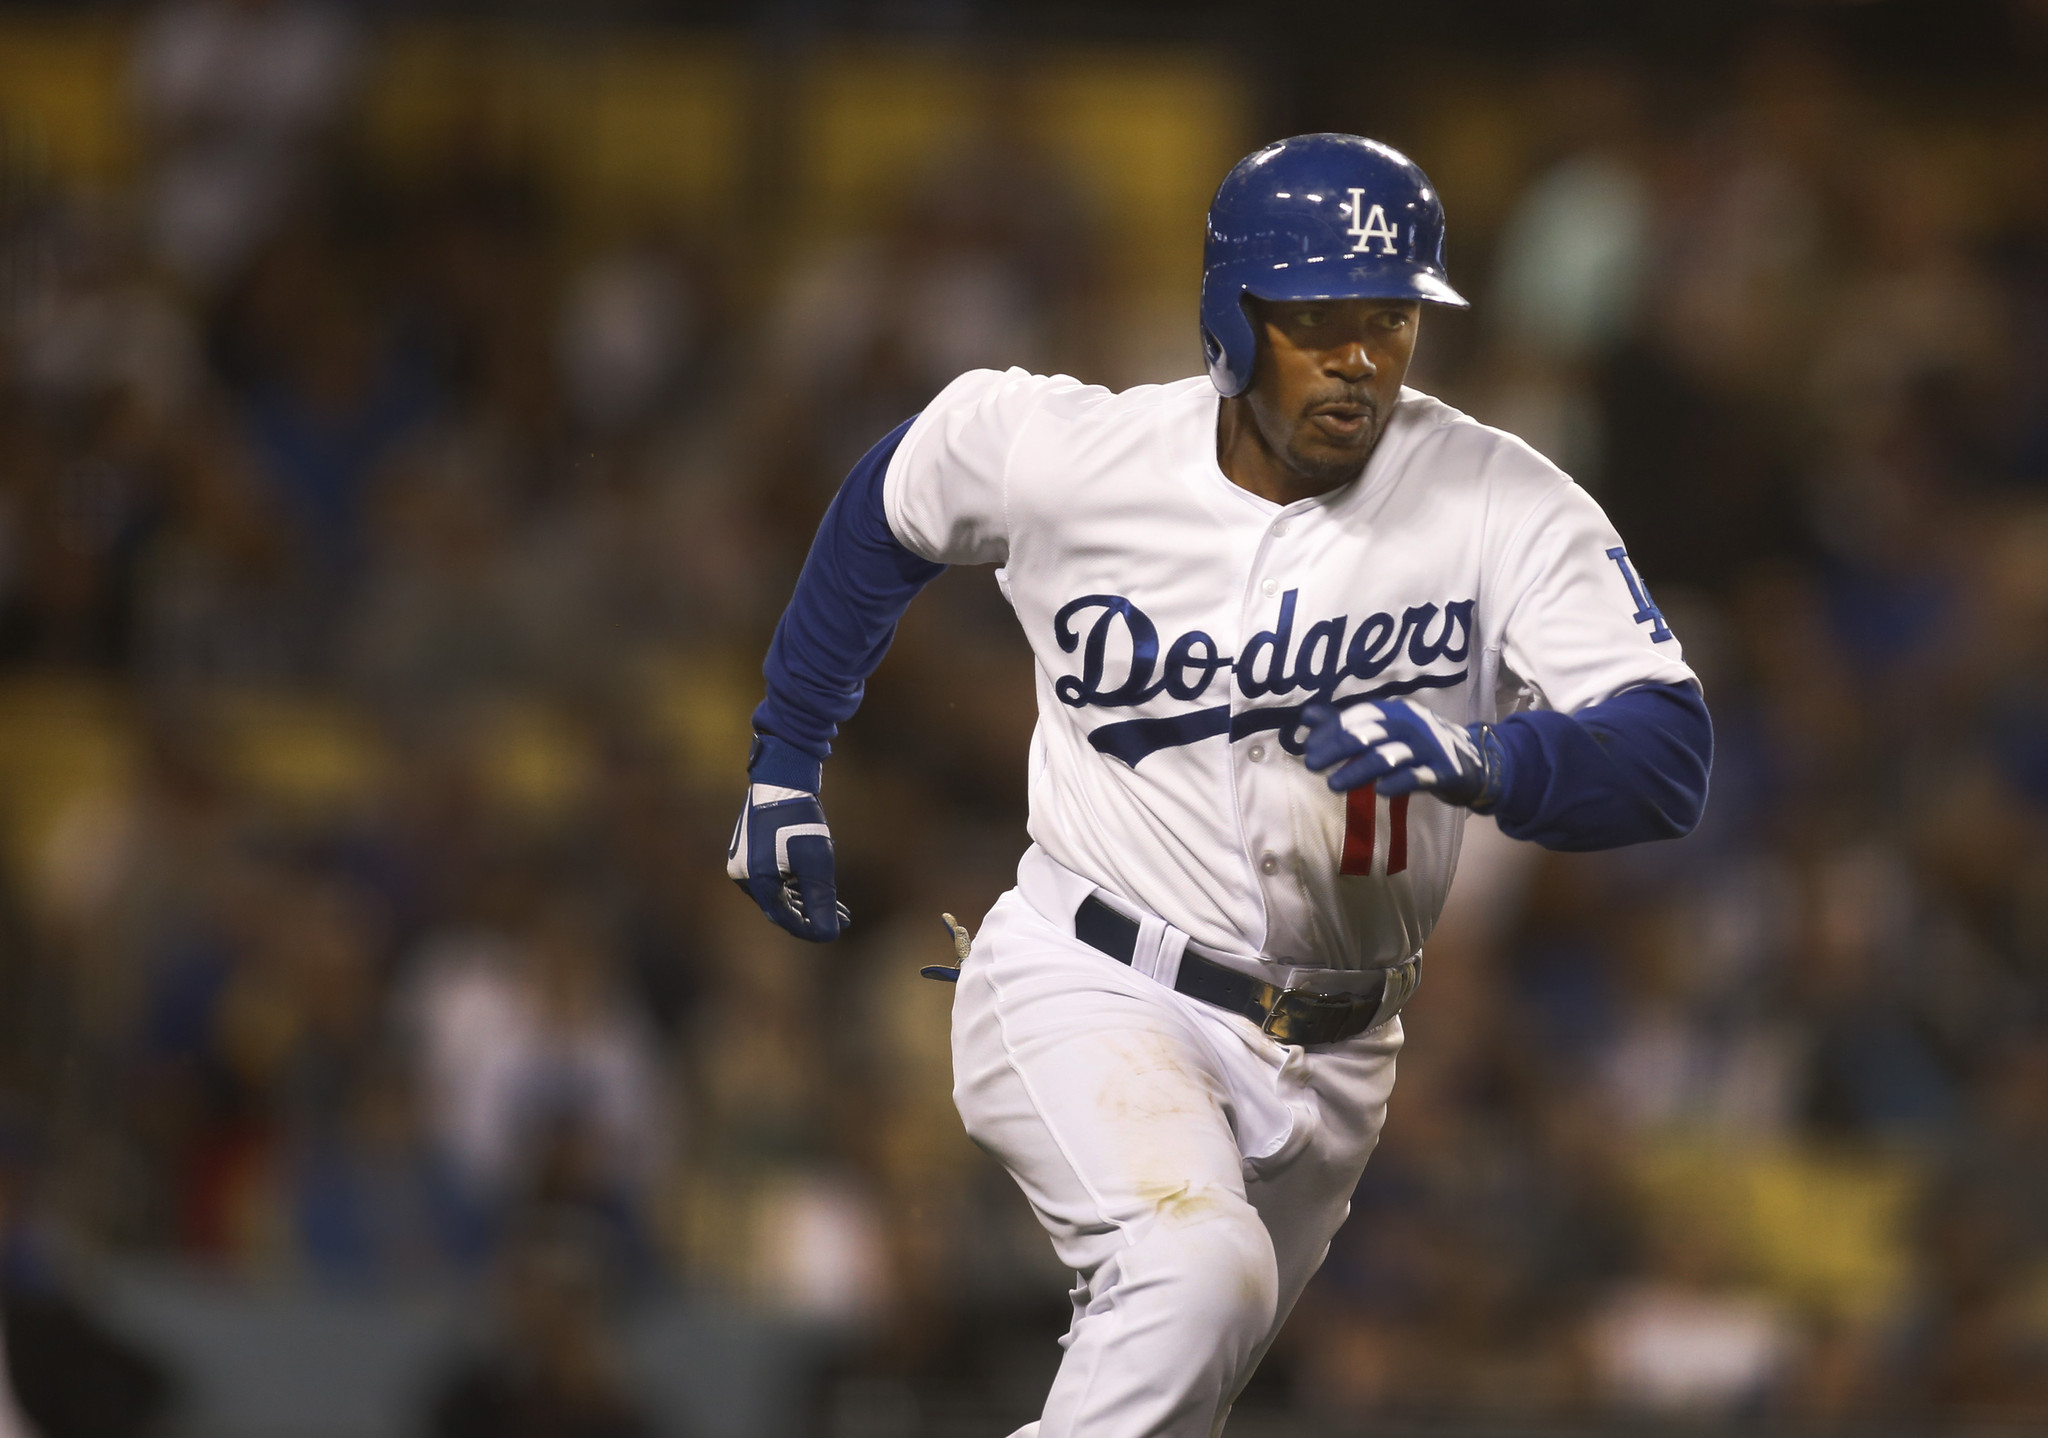 Charter to offer Dodgers TV channel as it moves to buy Time Warner Cable